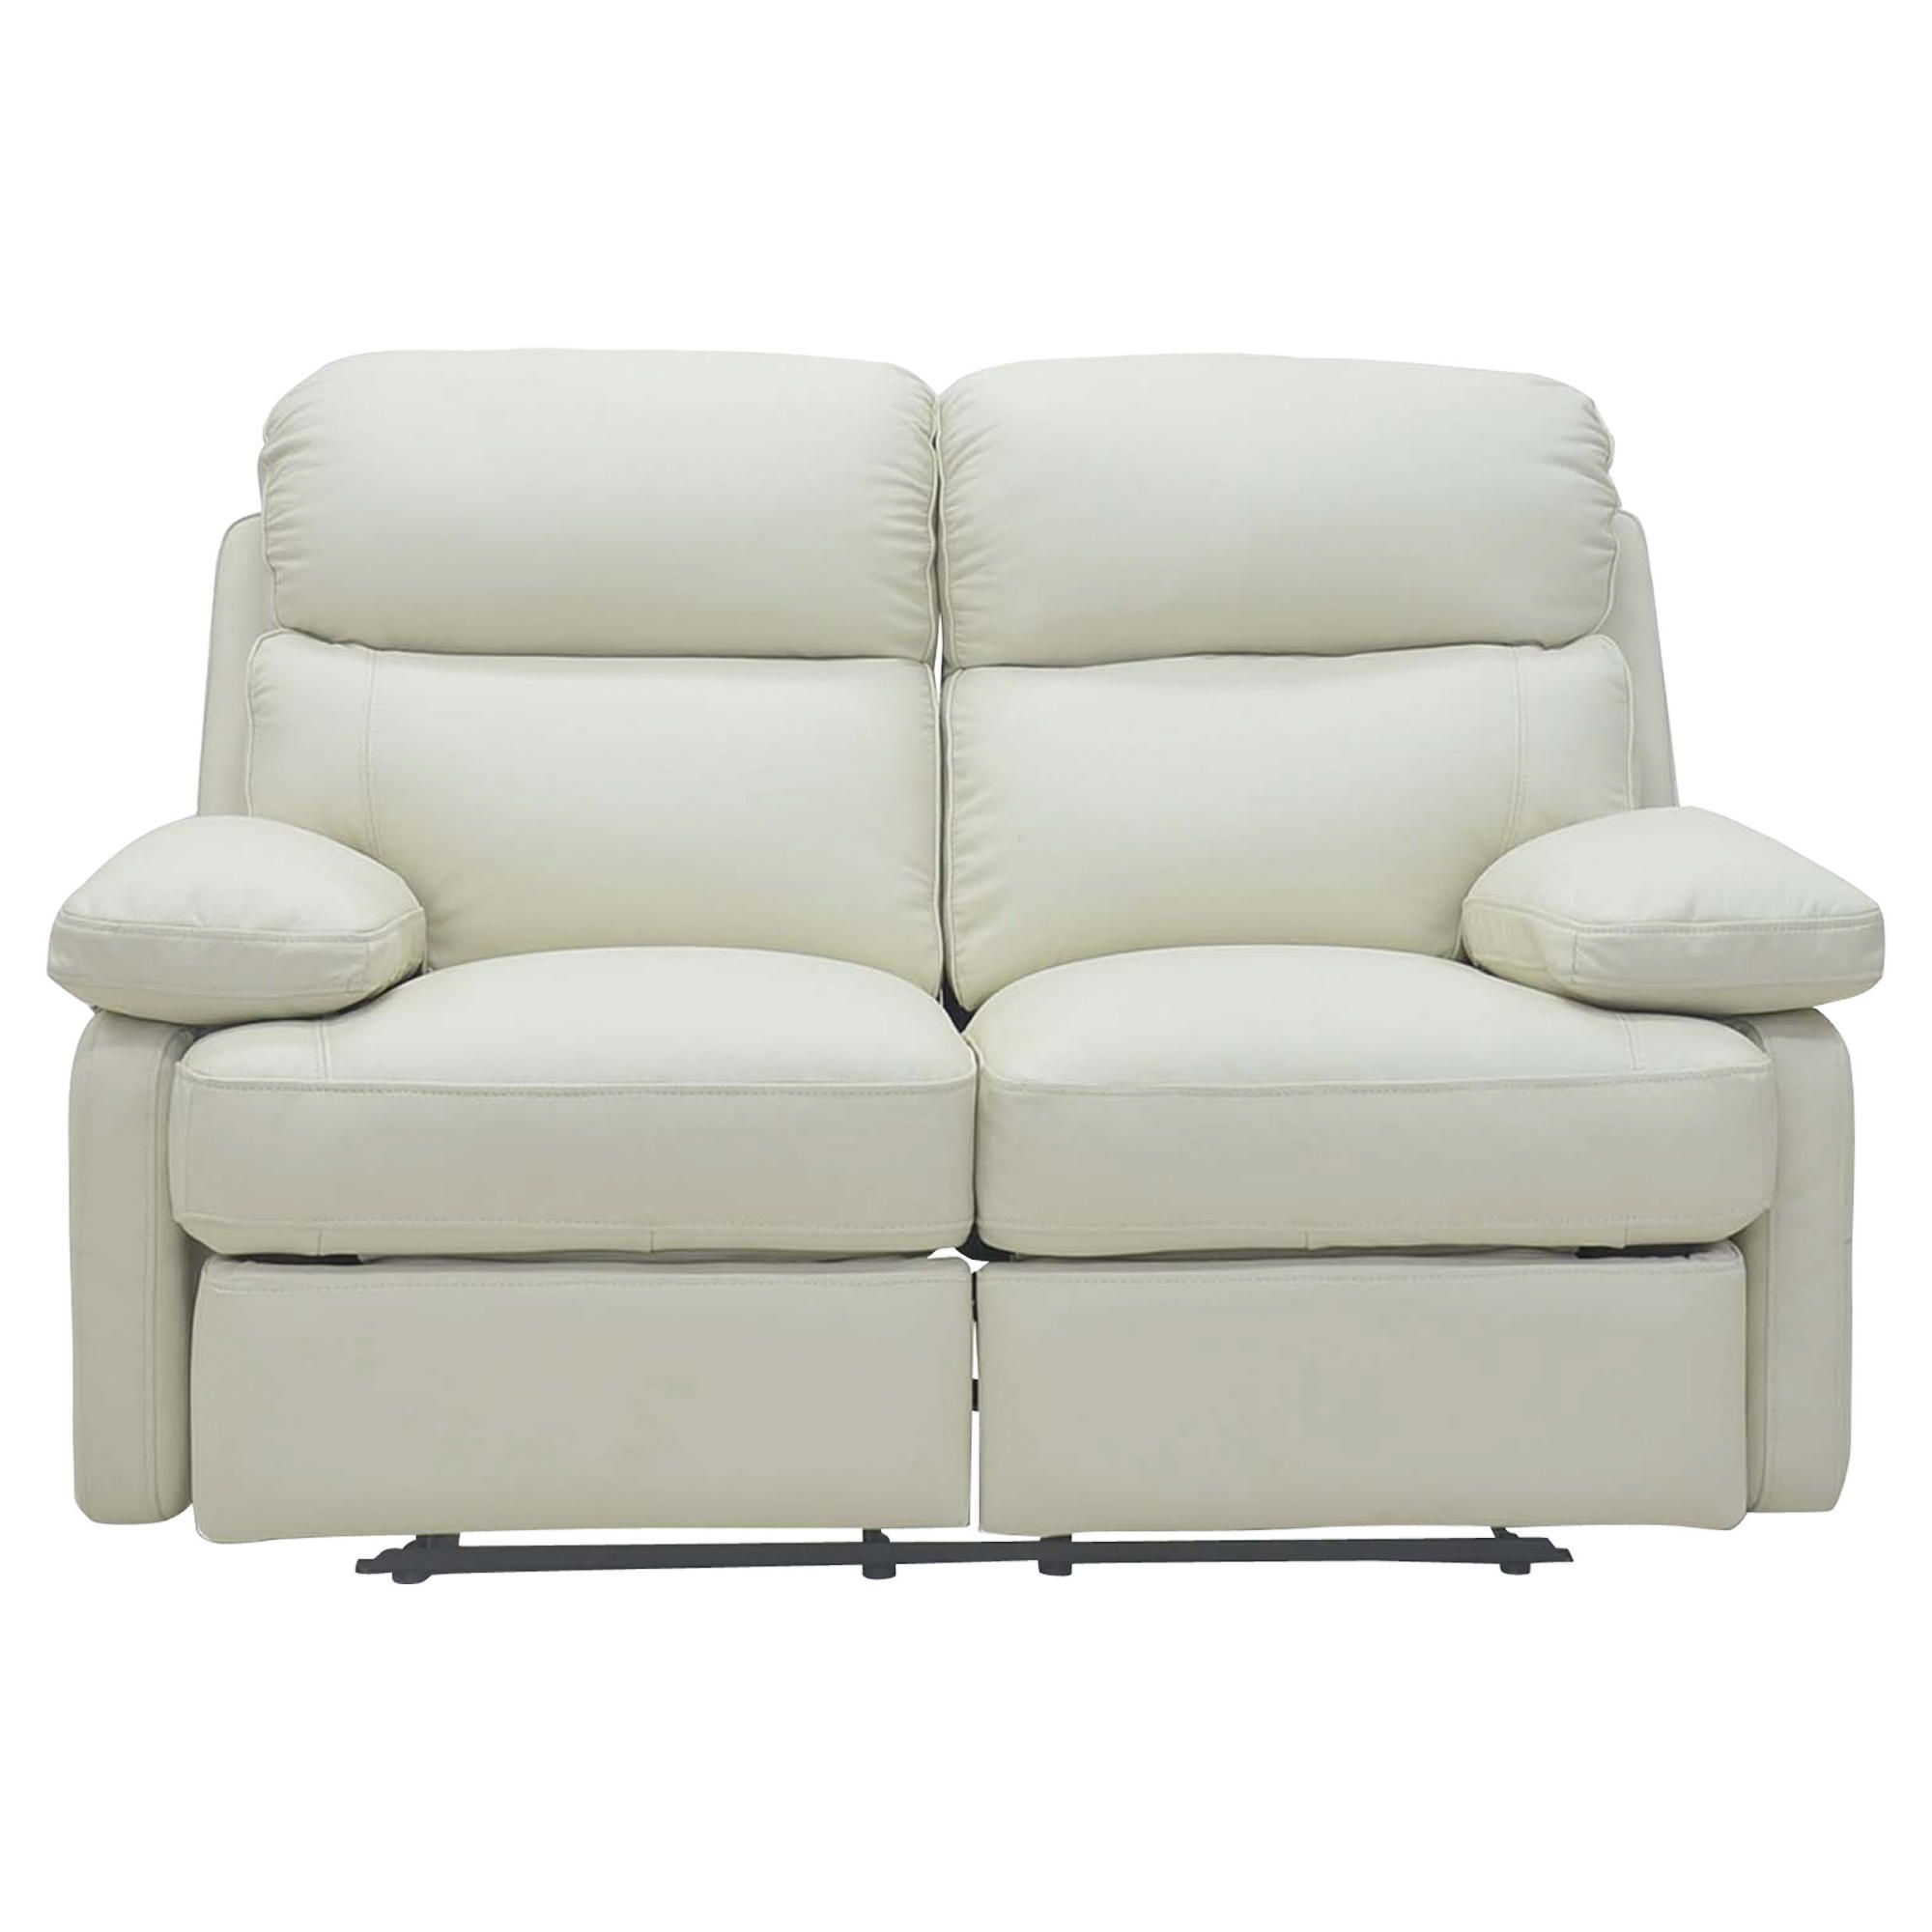 Cordova Leather Small Recliner Sofa Ivory at Tesco Direct